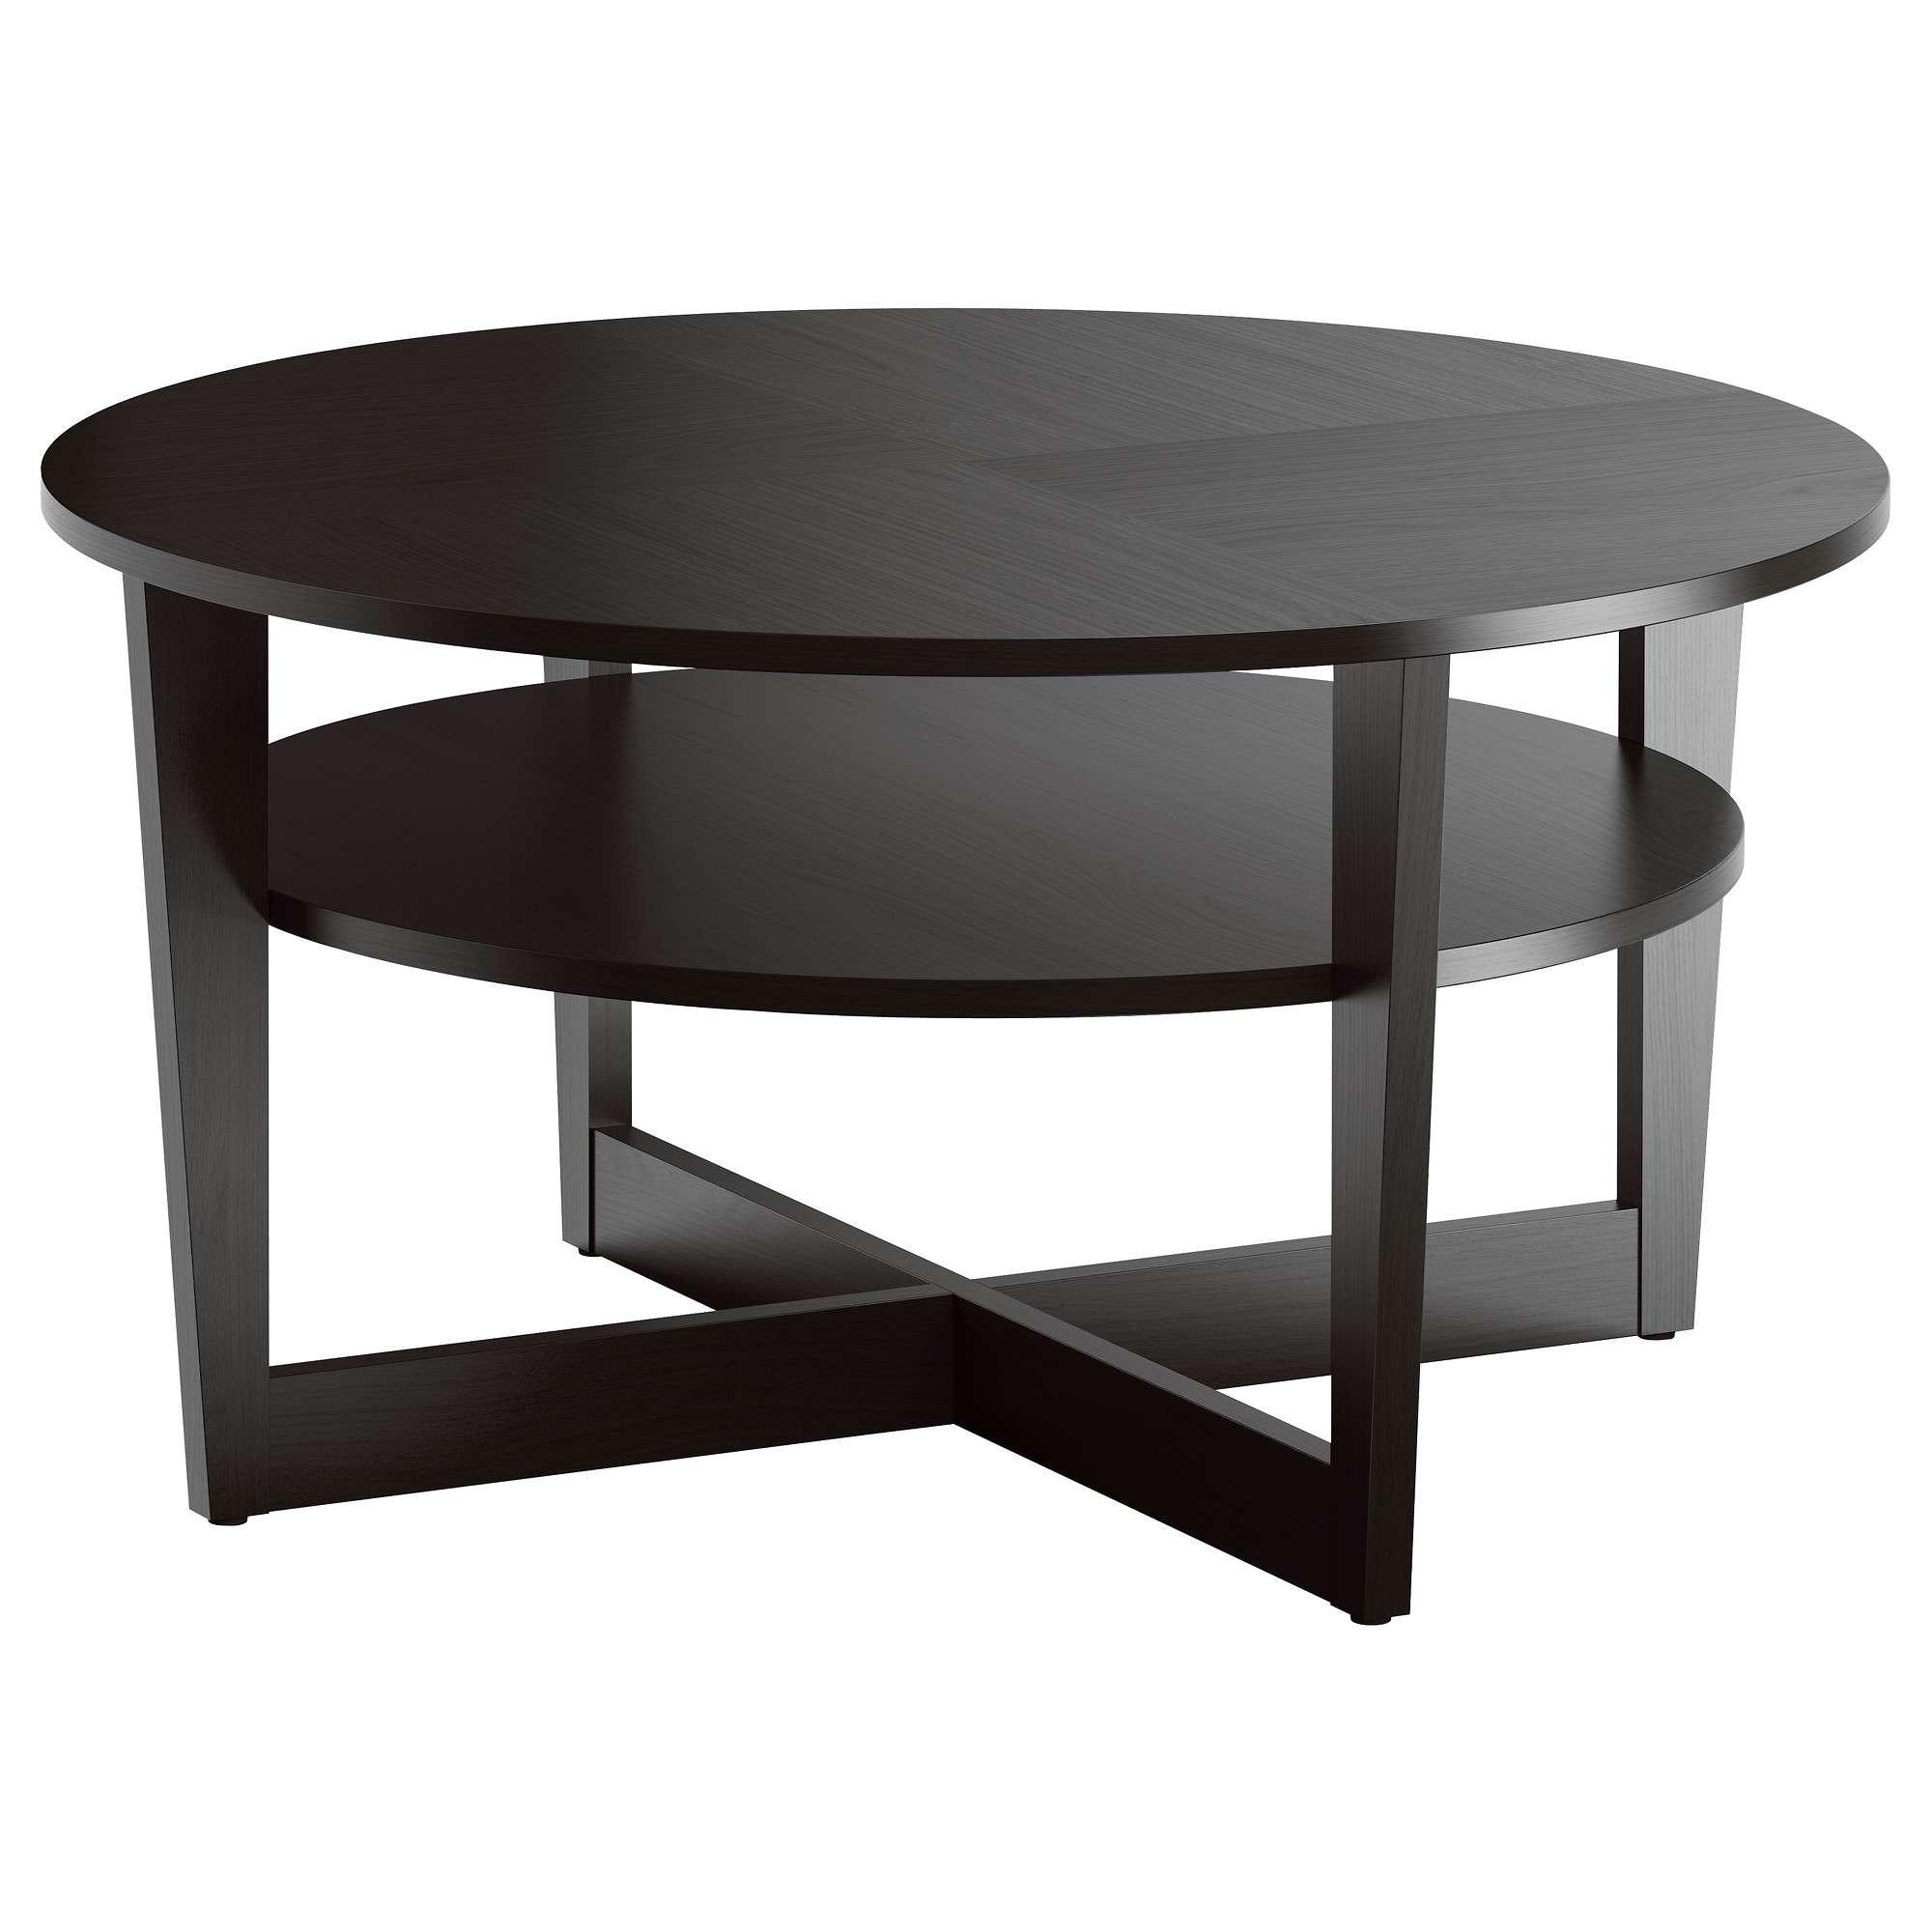 Vejmon Coffee Table – Black Brown – Ikea Intended For Popular White And Black Coffee Tables (View 18 of 20)